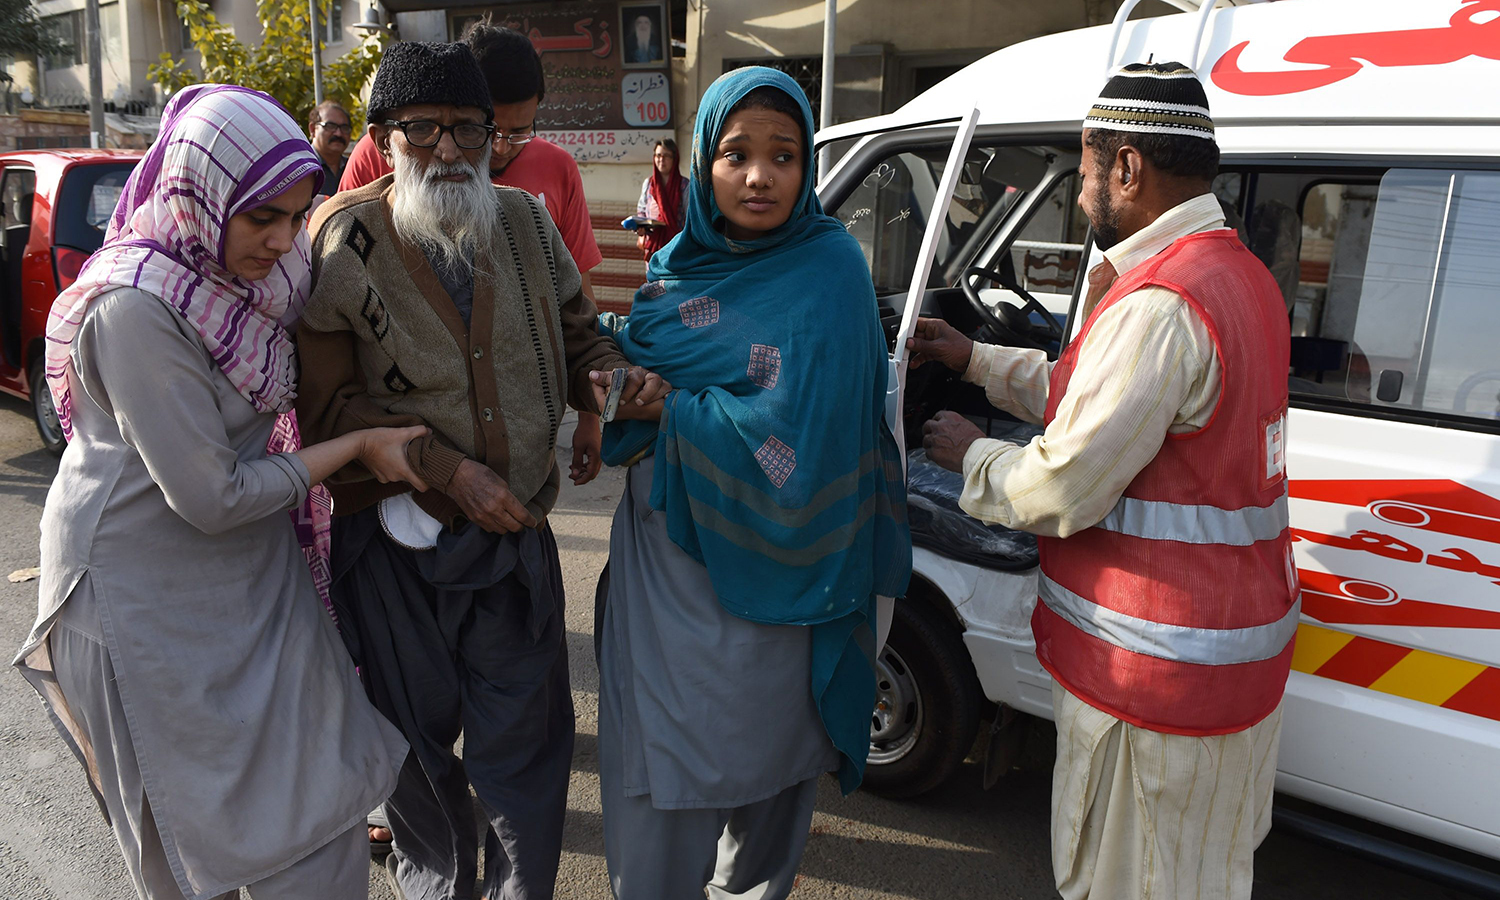 Abdul Sattar Edhi(2nd L) is assisted by staff as he arrives at his office in Karachi.  – AFP